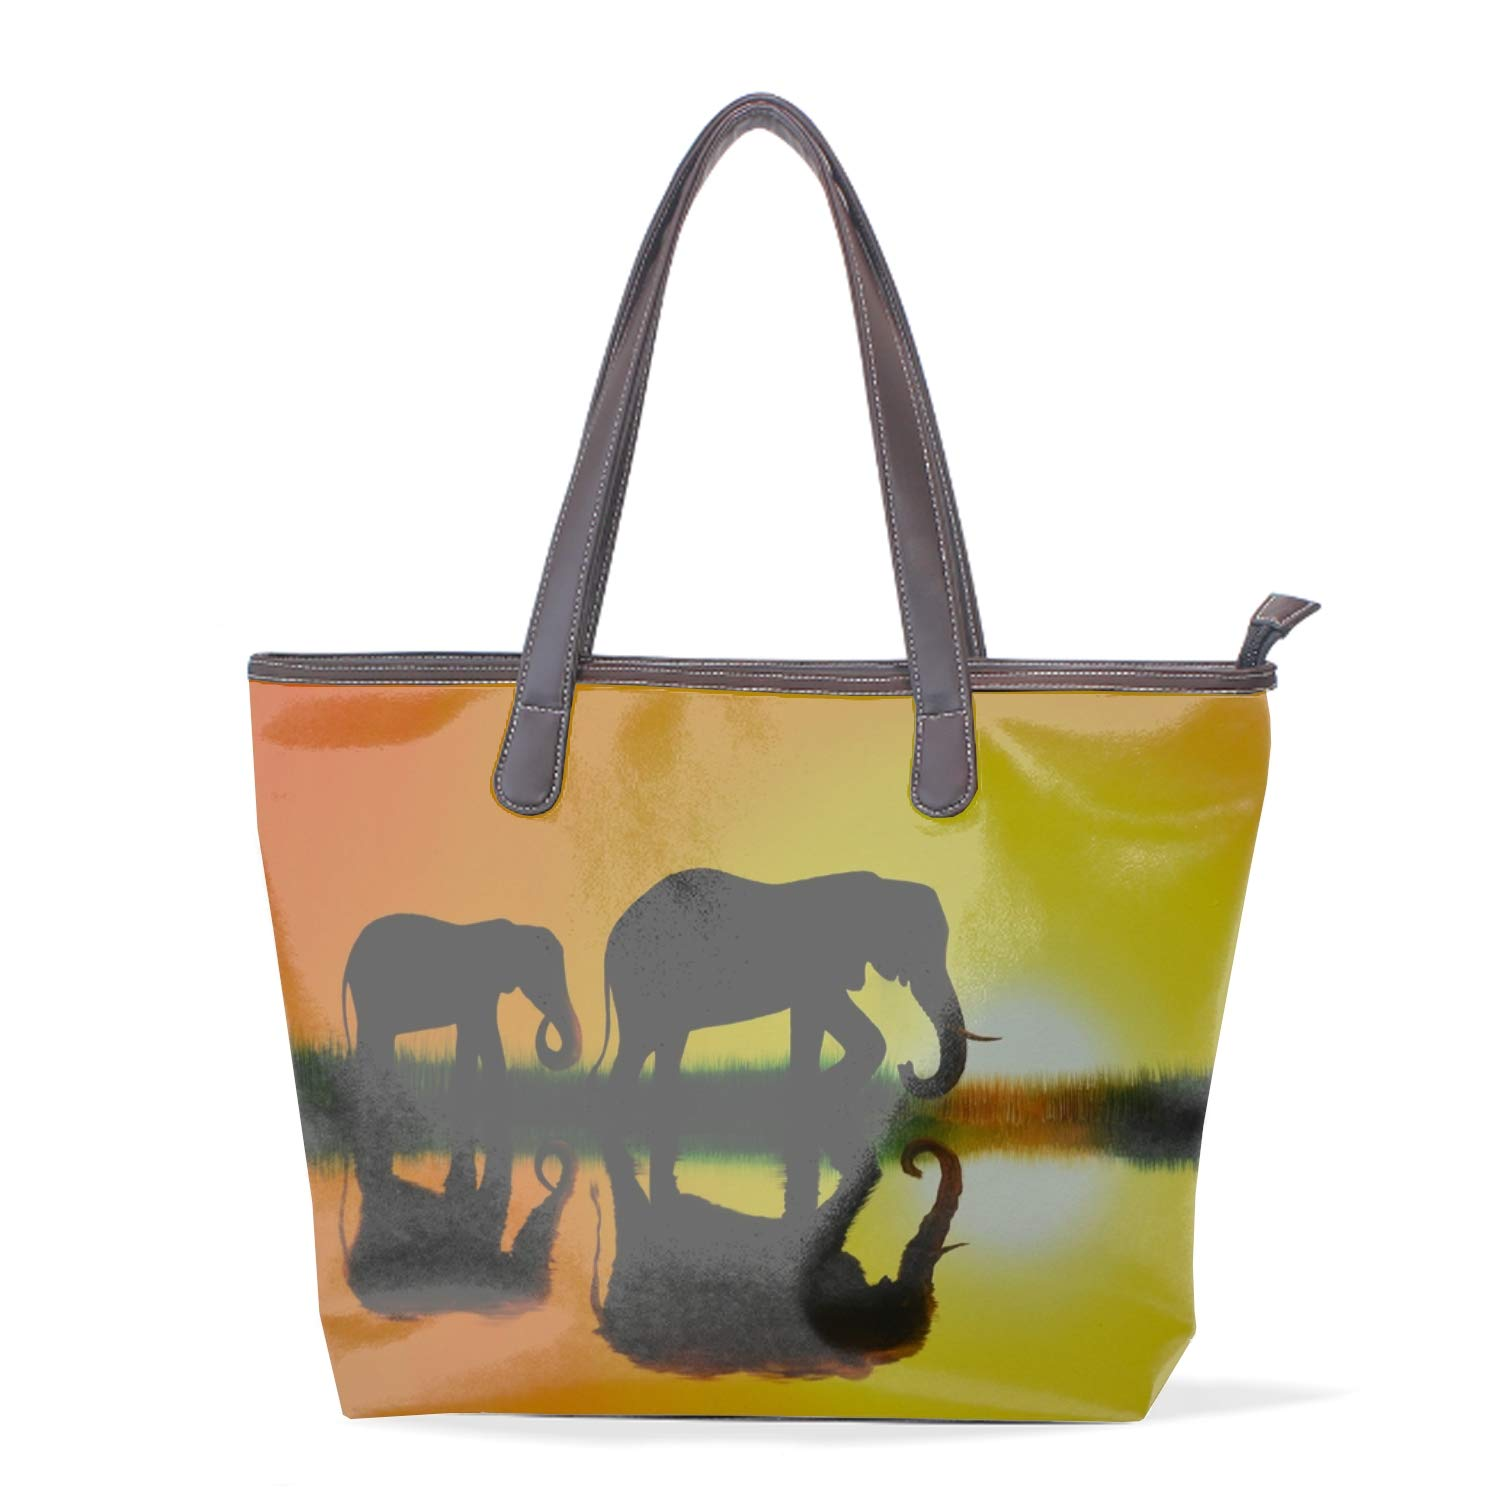 Elephant Painting Ladies Travel Weekender Overnight Carry-on Shoulder Duffel Tote Bag With PU Leather Strap